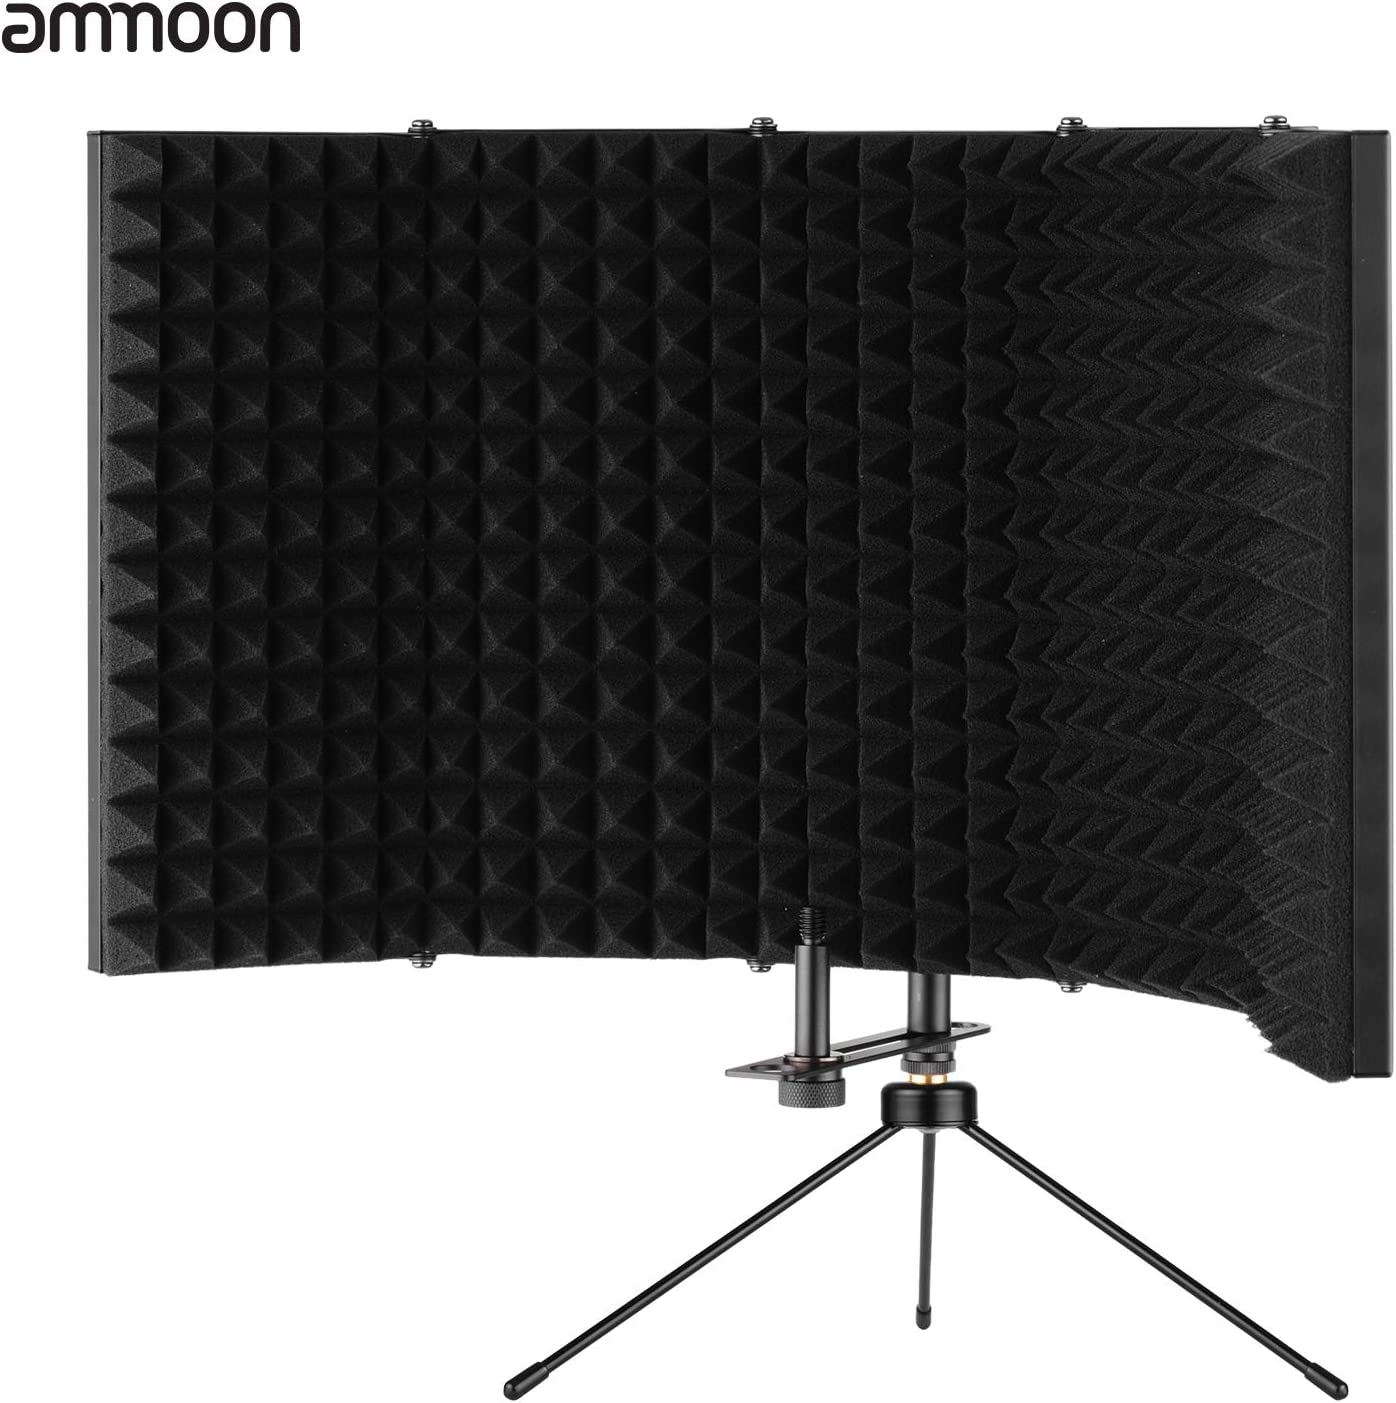 ammoon Microphone Isolation Shield Compact Foldable Tabletop Isolation Shield with Microphone Tripod Stand Supporting Rod 5//8 Inch Screw Adapter Carrying Bag for Studio Professional Recording Singing